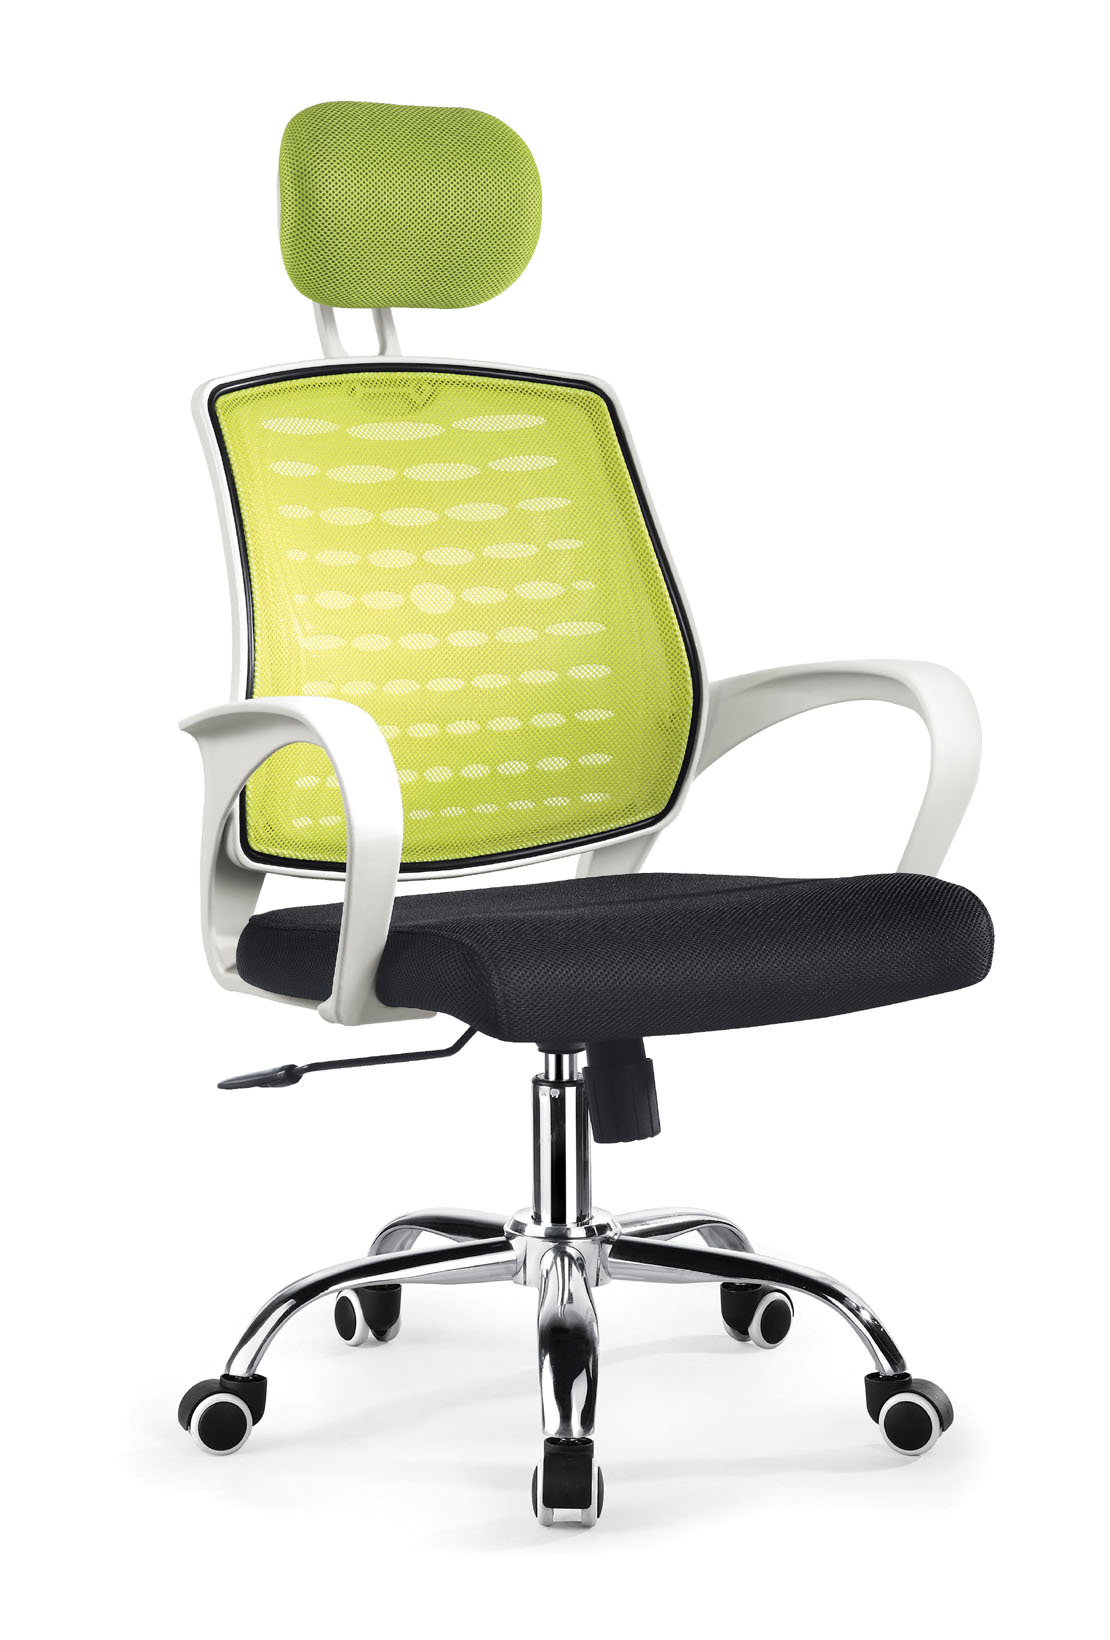 Buy ZHNSMC-05P Swivel Office Chair Neck Support Price,Size